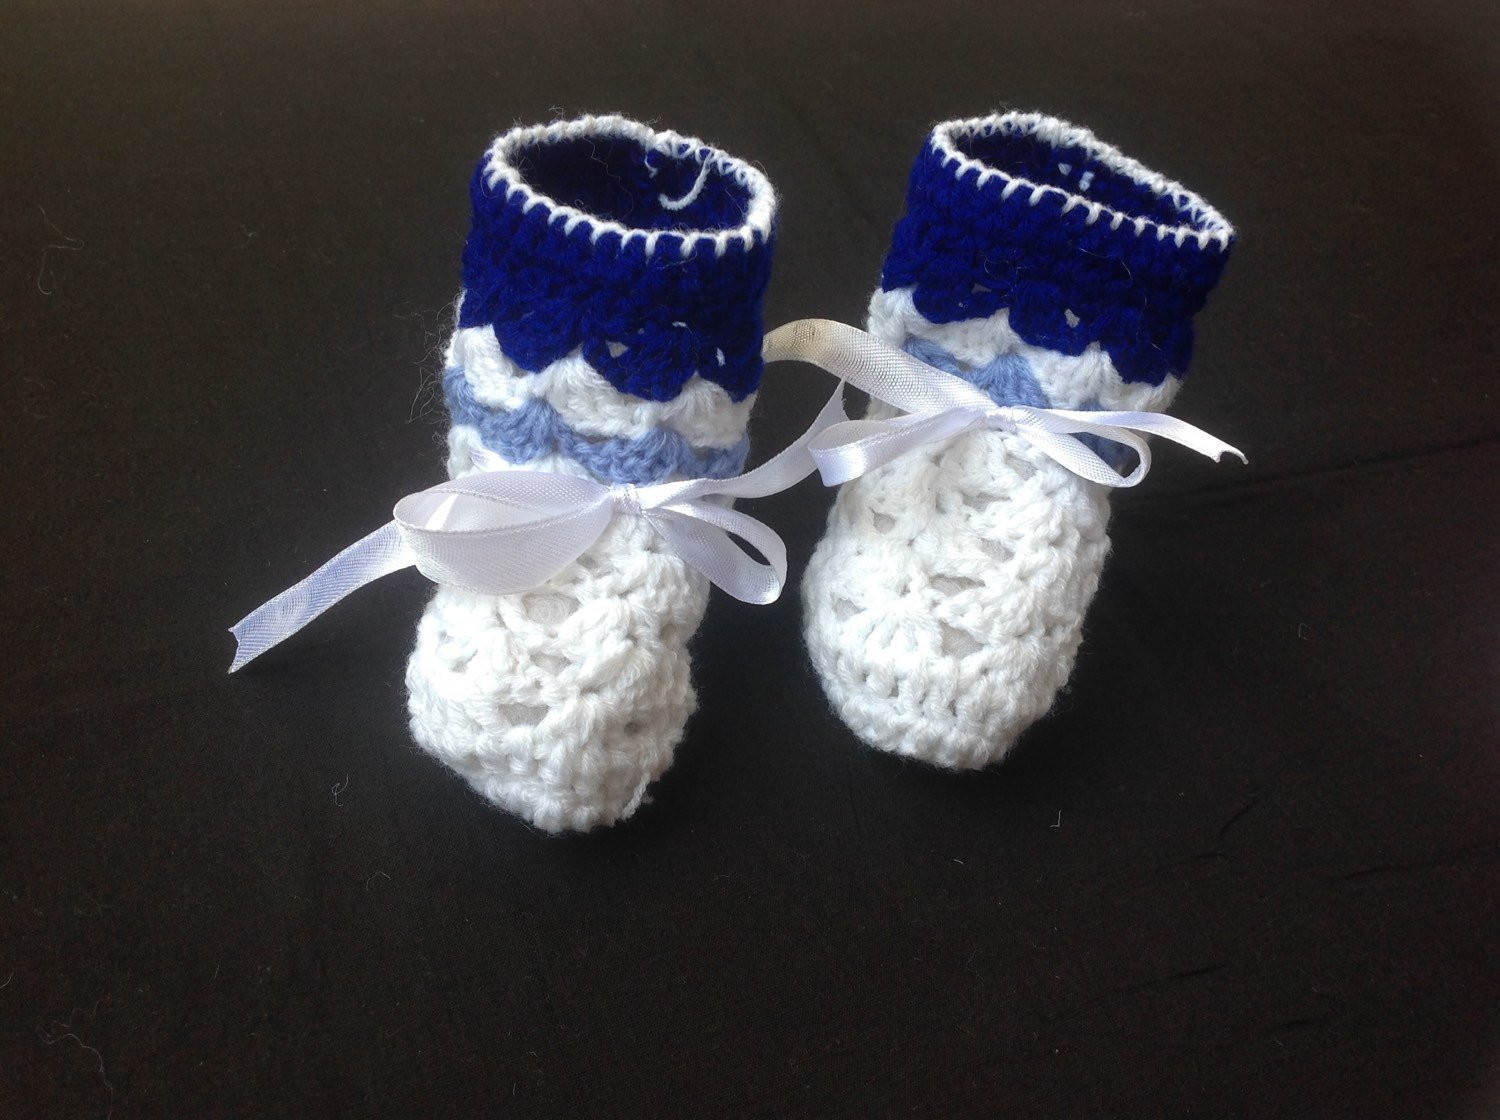 Beautiful Crochet Pattern Baby Booties socks Slippers Newborn socks Crochet Baby socks Of New Berry Baby Booties Knitting Pattern Easy Crochet Baby socks